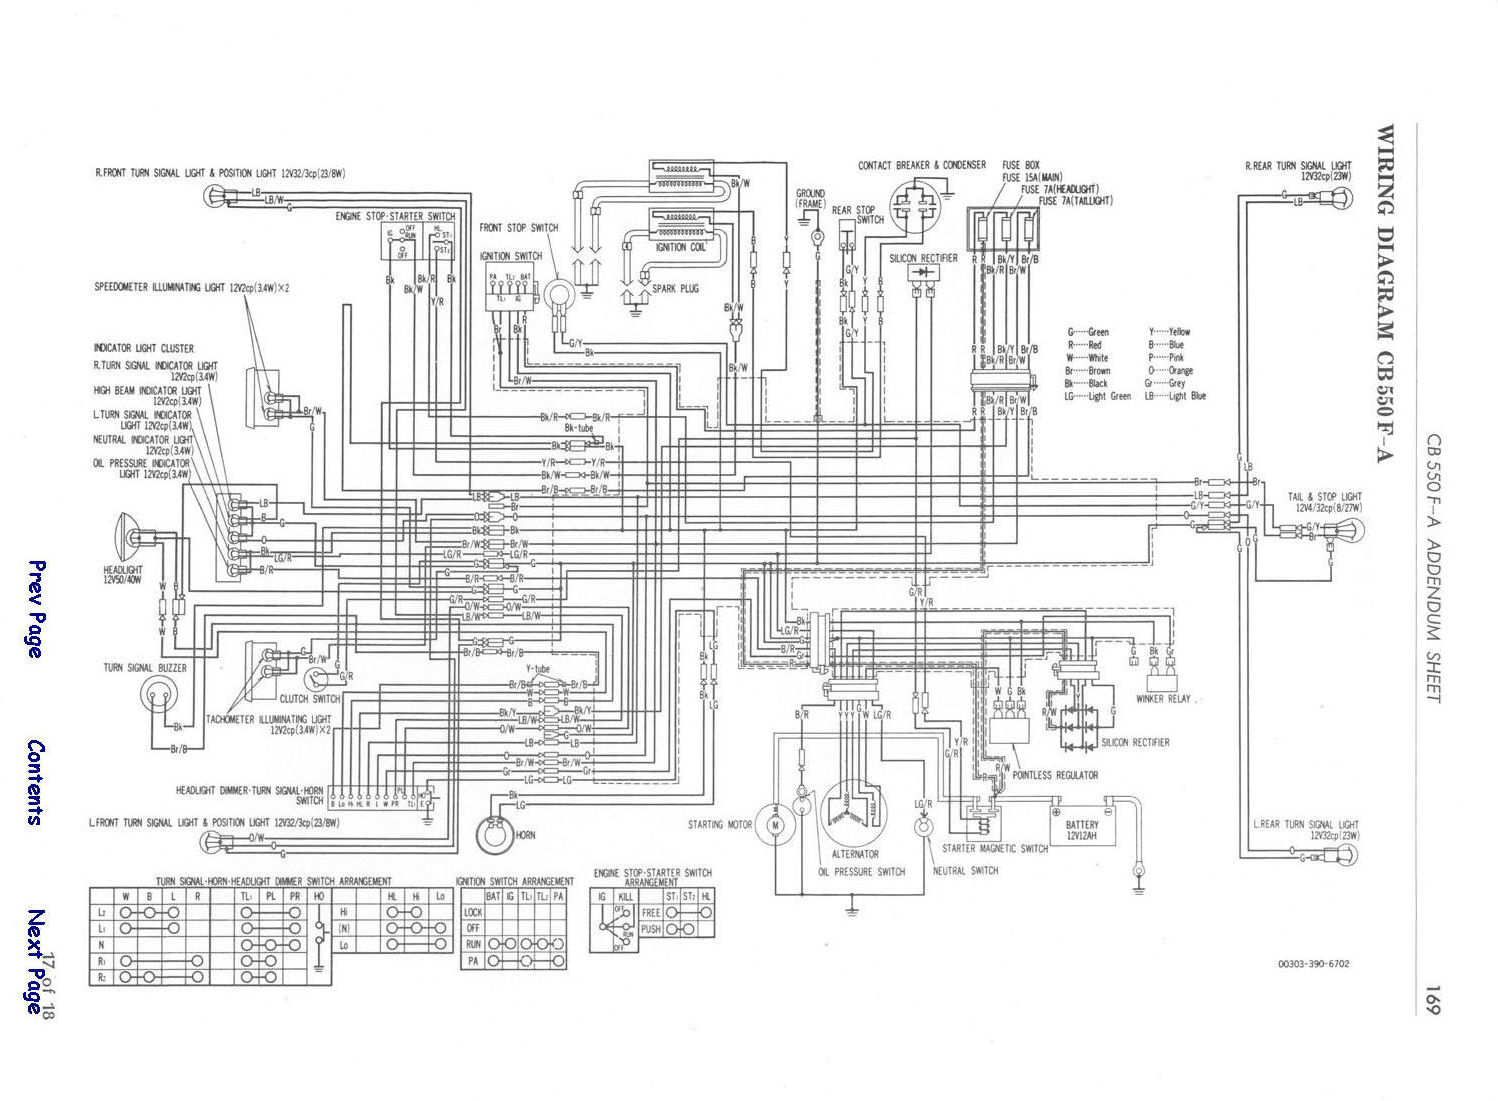 Wiring Diagram Cb Best Of Attractive Vtec Inside furthermore Us D in addition  together with Index Php Phpsessid A Rh Ubo Lshqls Epm Jr   Action Dlattach Topic in addition Ca C Eb B Abb A C Fb. on honda cb550f wiring diagram